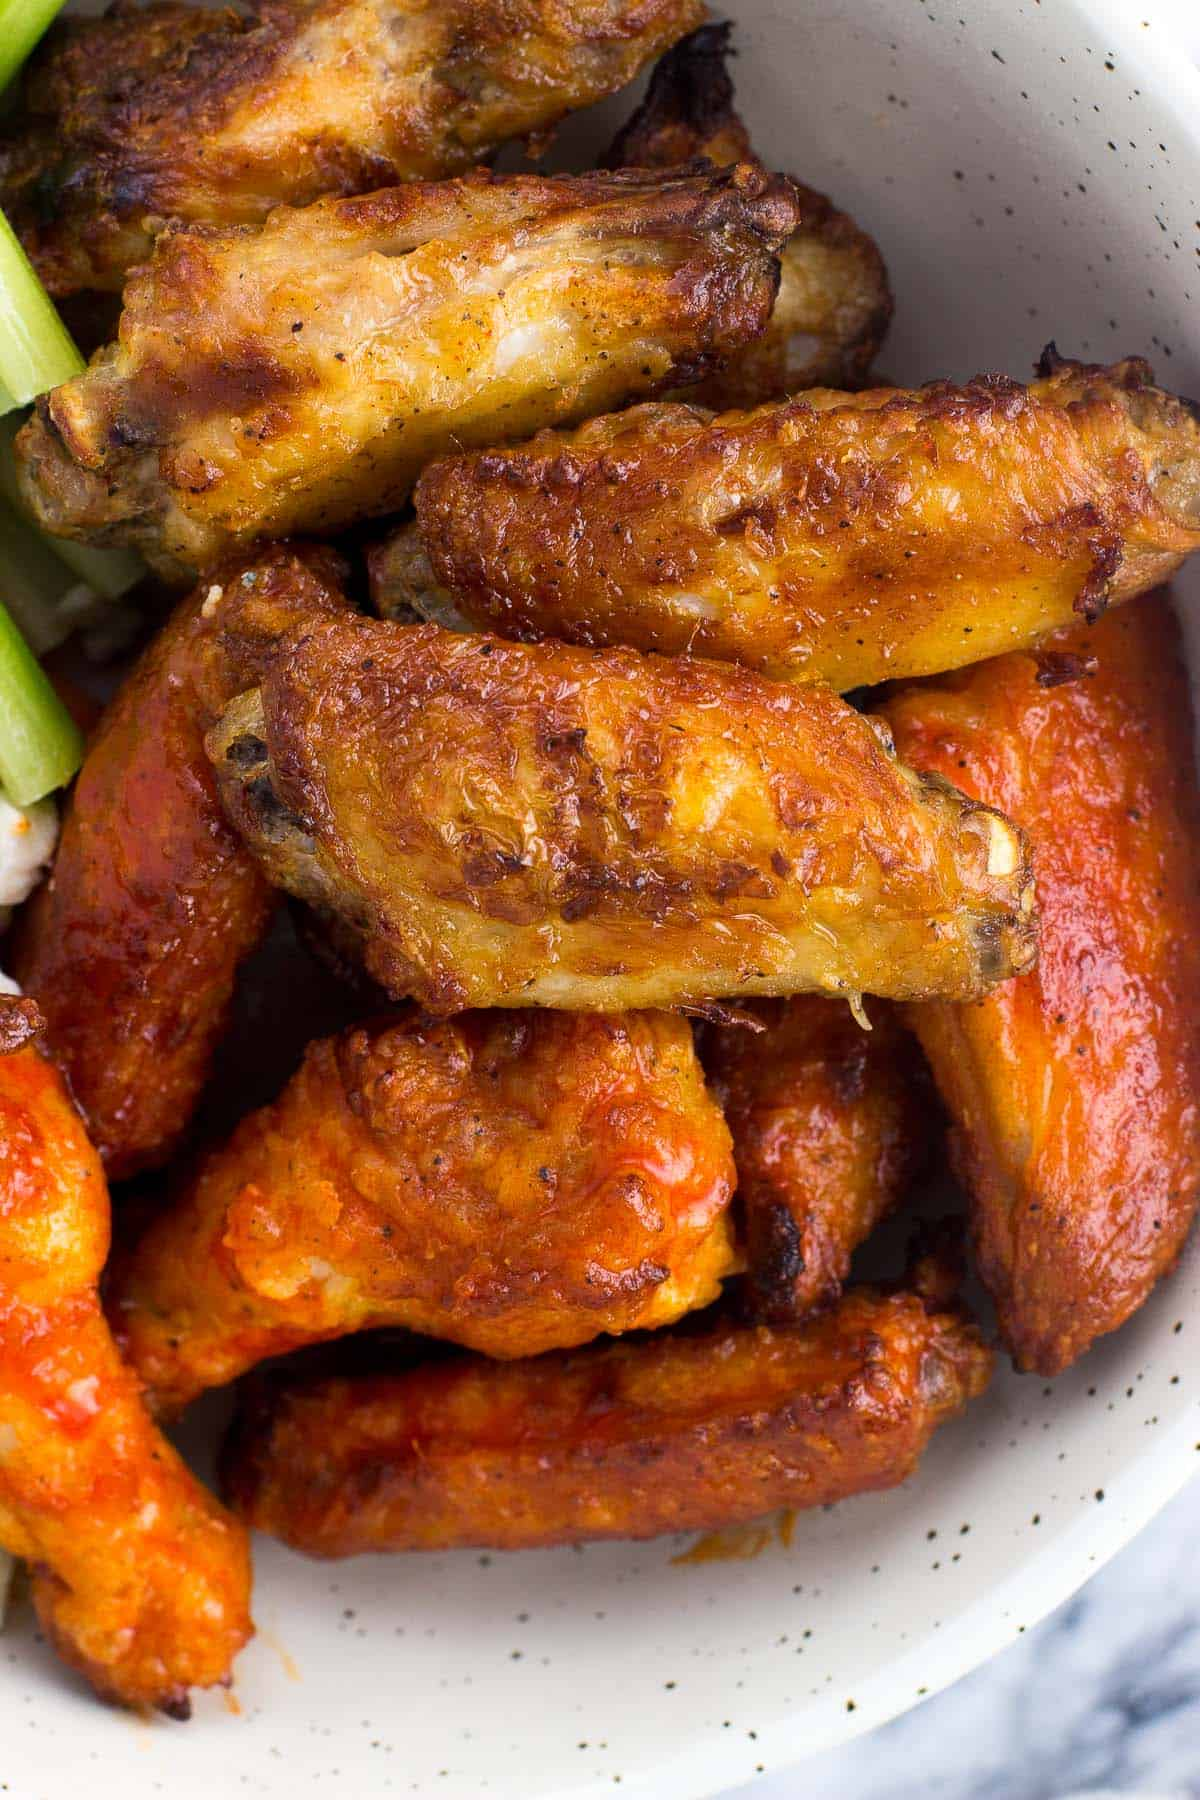 A close-up picture of cooked chicken wings in a dish, half coated in buffalo sauce and half plain